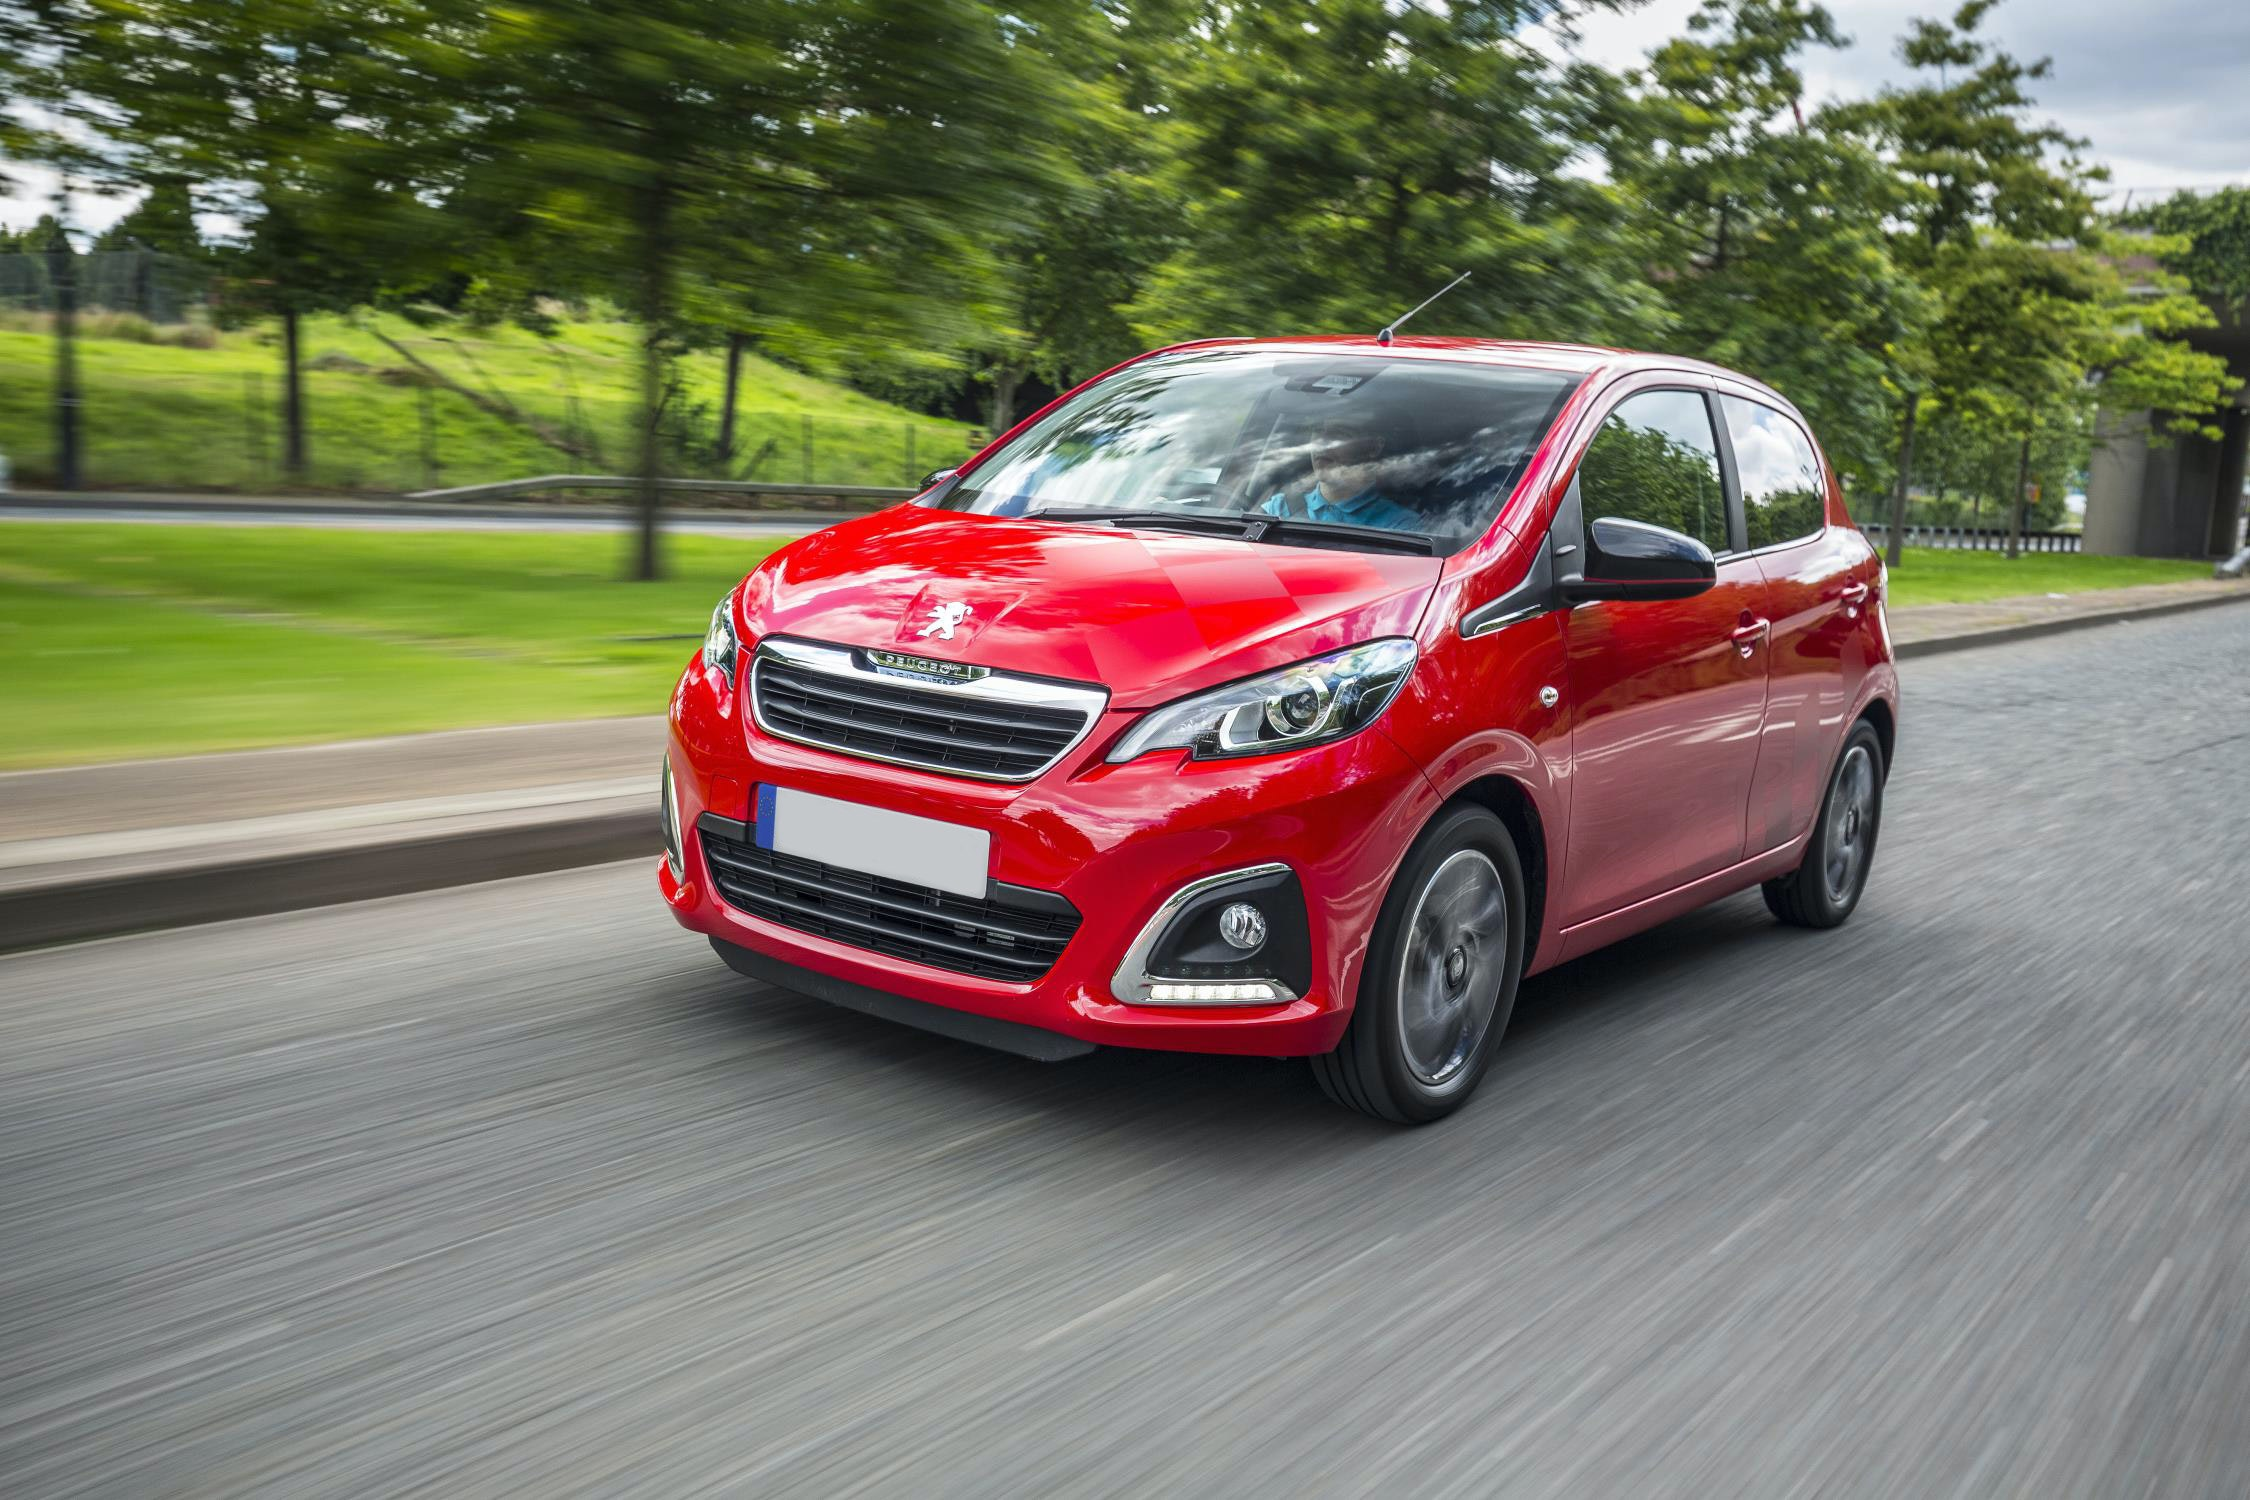 It's worth choosing the larger, 1.2-litre engine, if you have to cover long distances